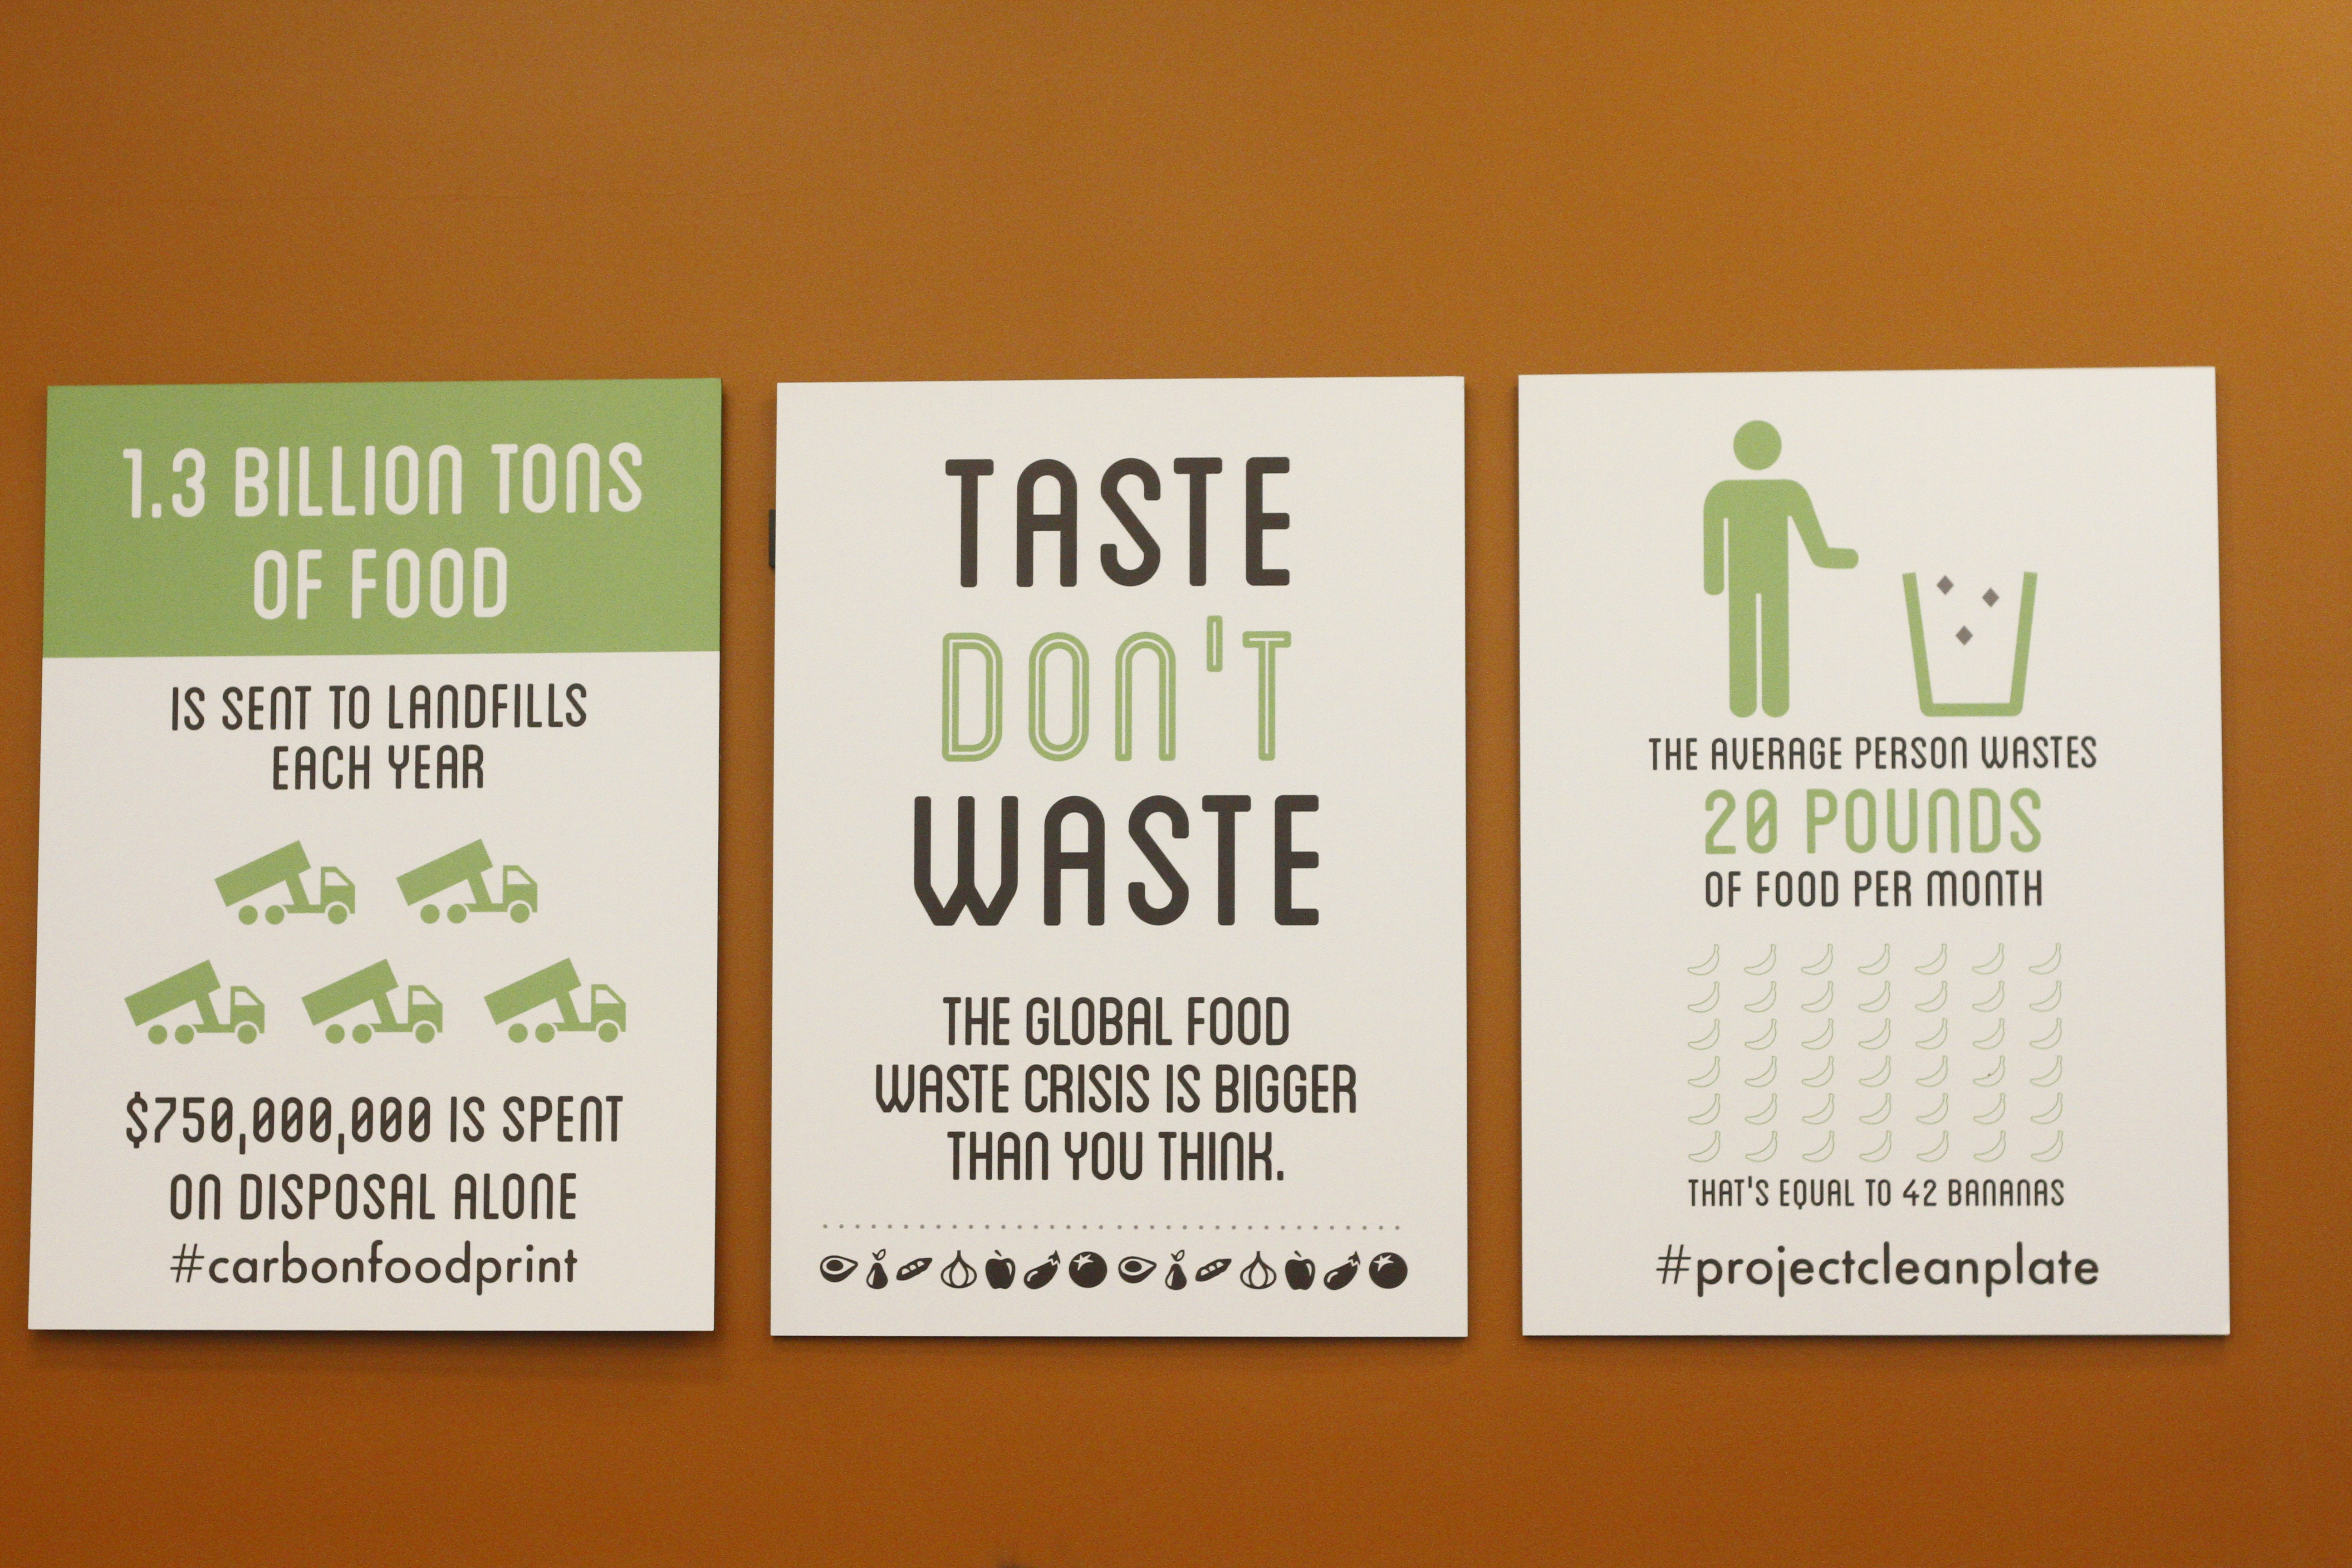 Network reduces campus food waste